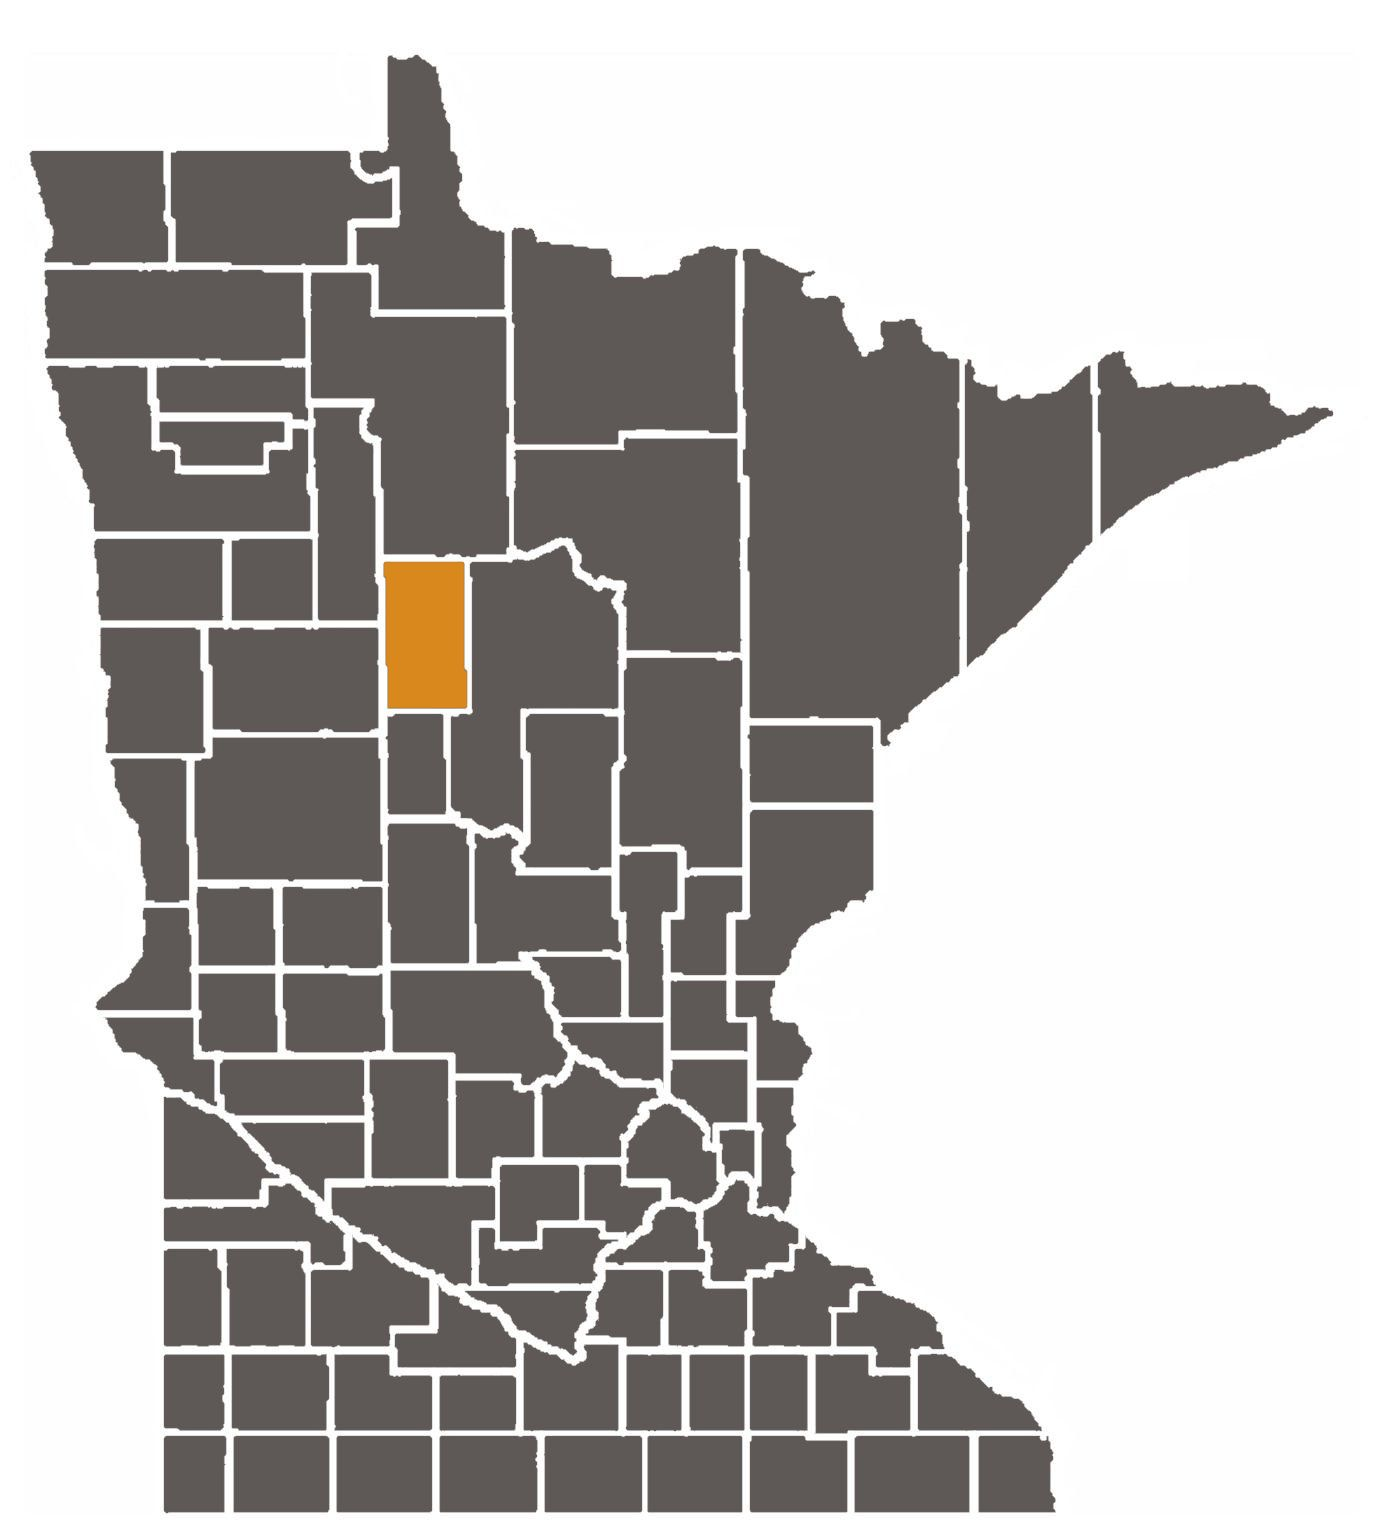 Minnesota map with Hubbard County highlighted.